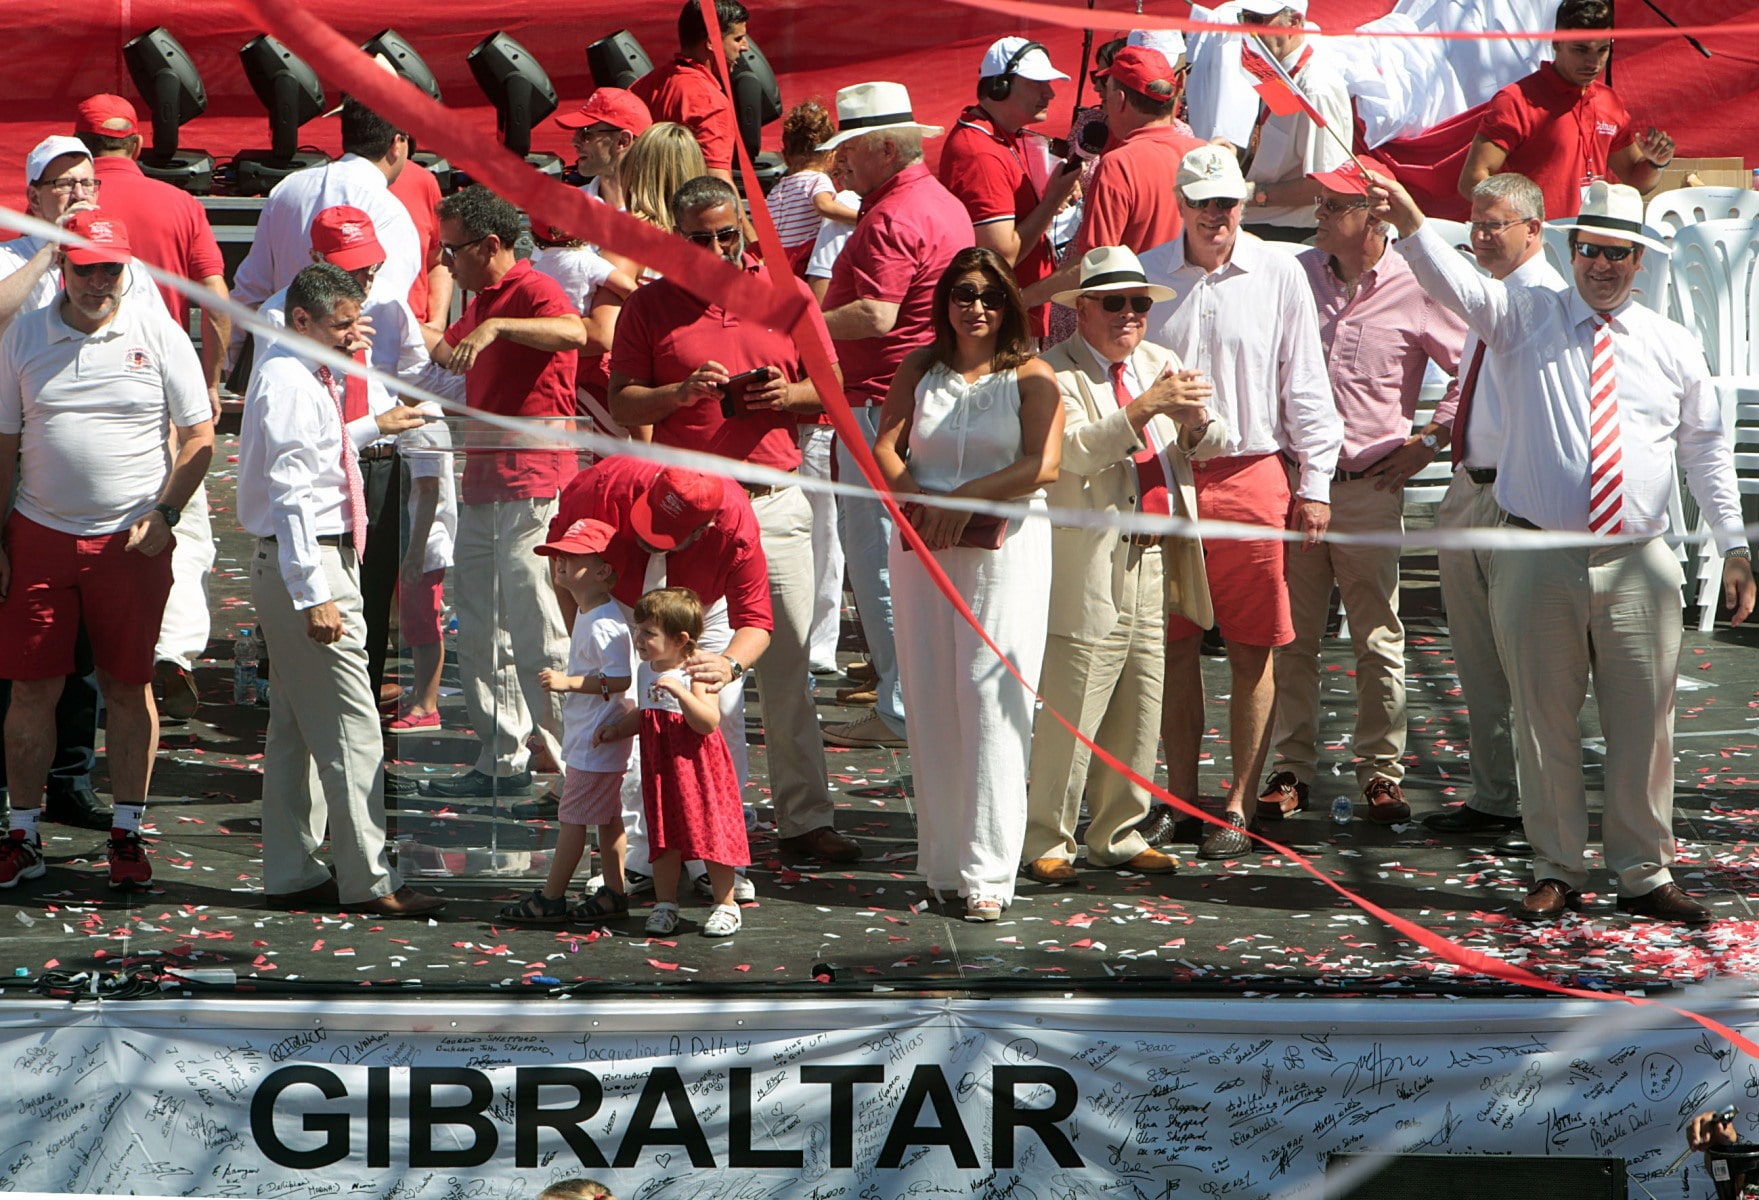 160910-national-day-gibraltar-2016-75_29314642660_o